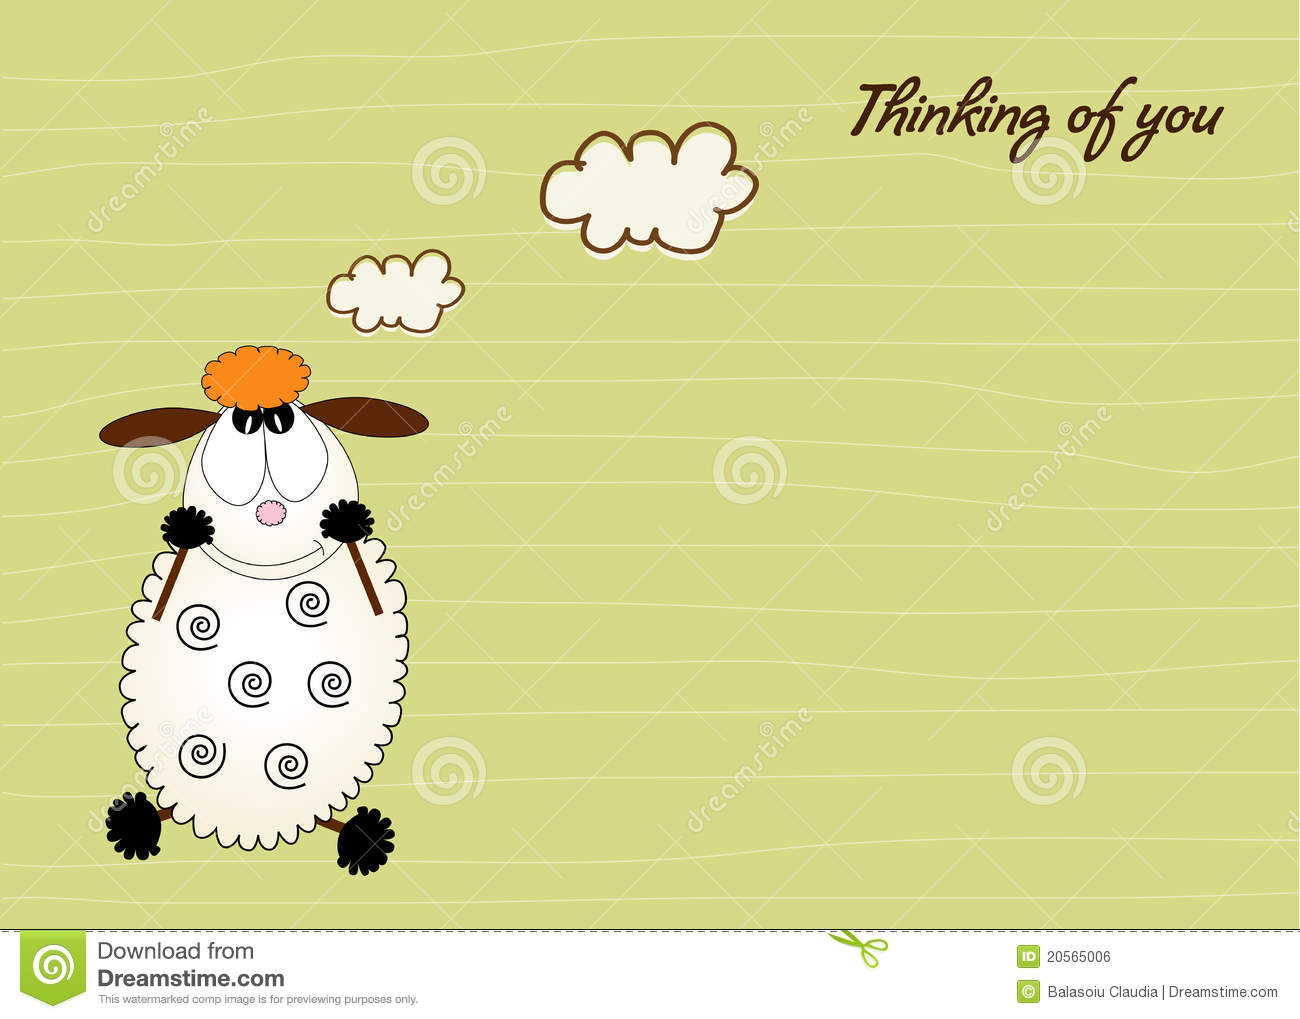 Cute Love Card With Sheep Royalty Free Stock Image - Image: 20565006